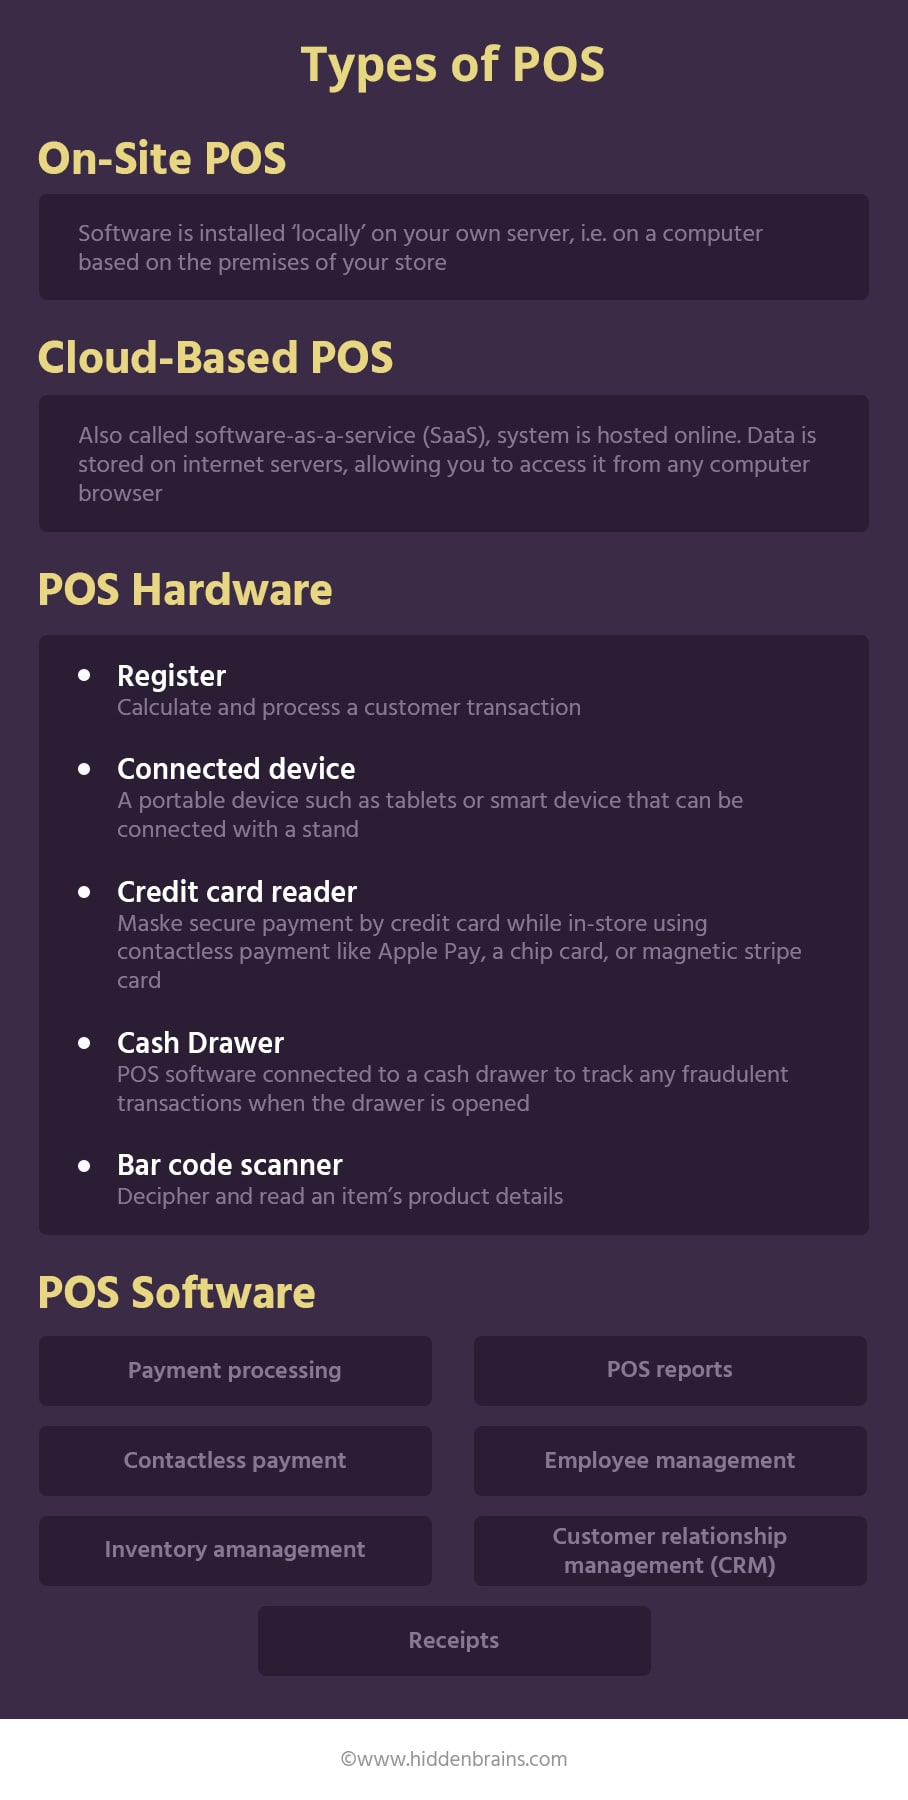 Types of POS Software